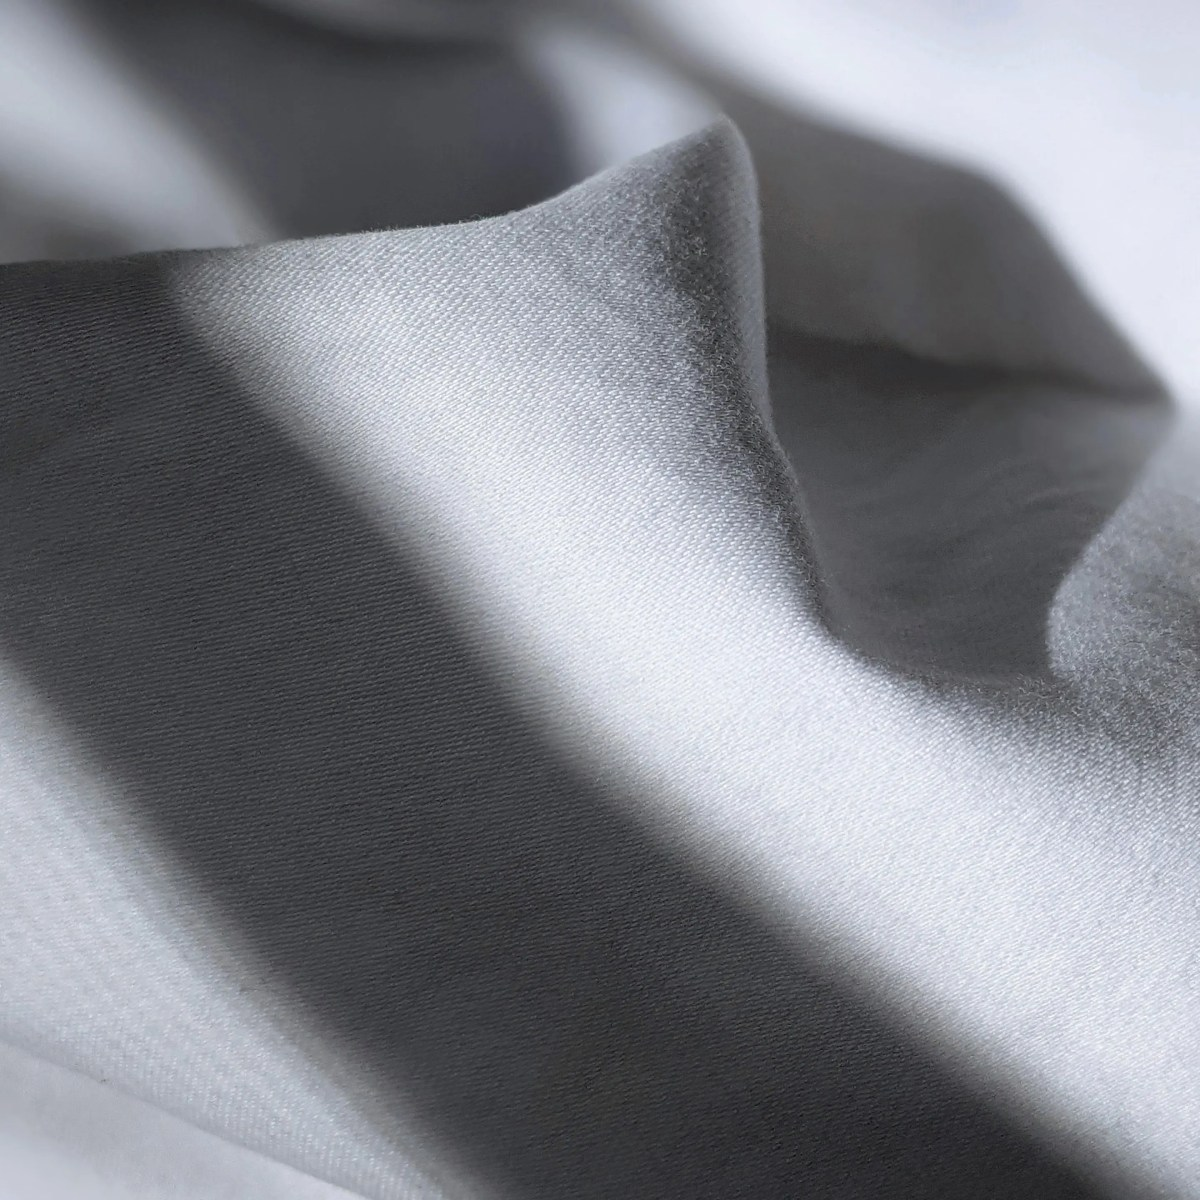 The Feather Company pillow cases